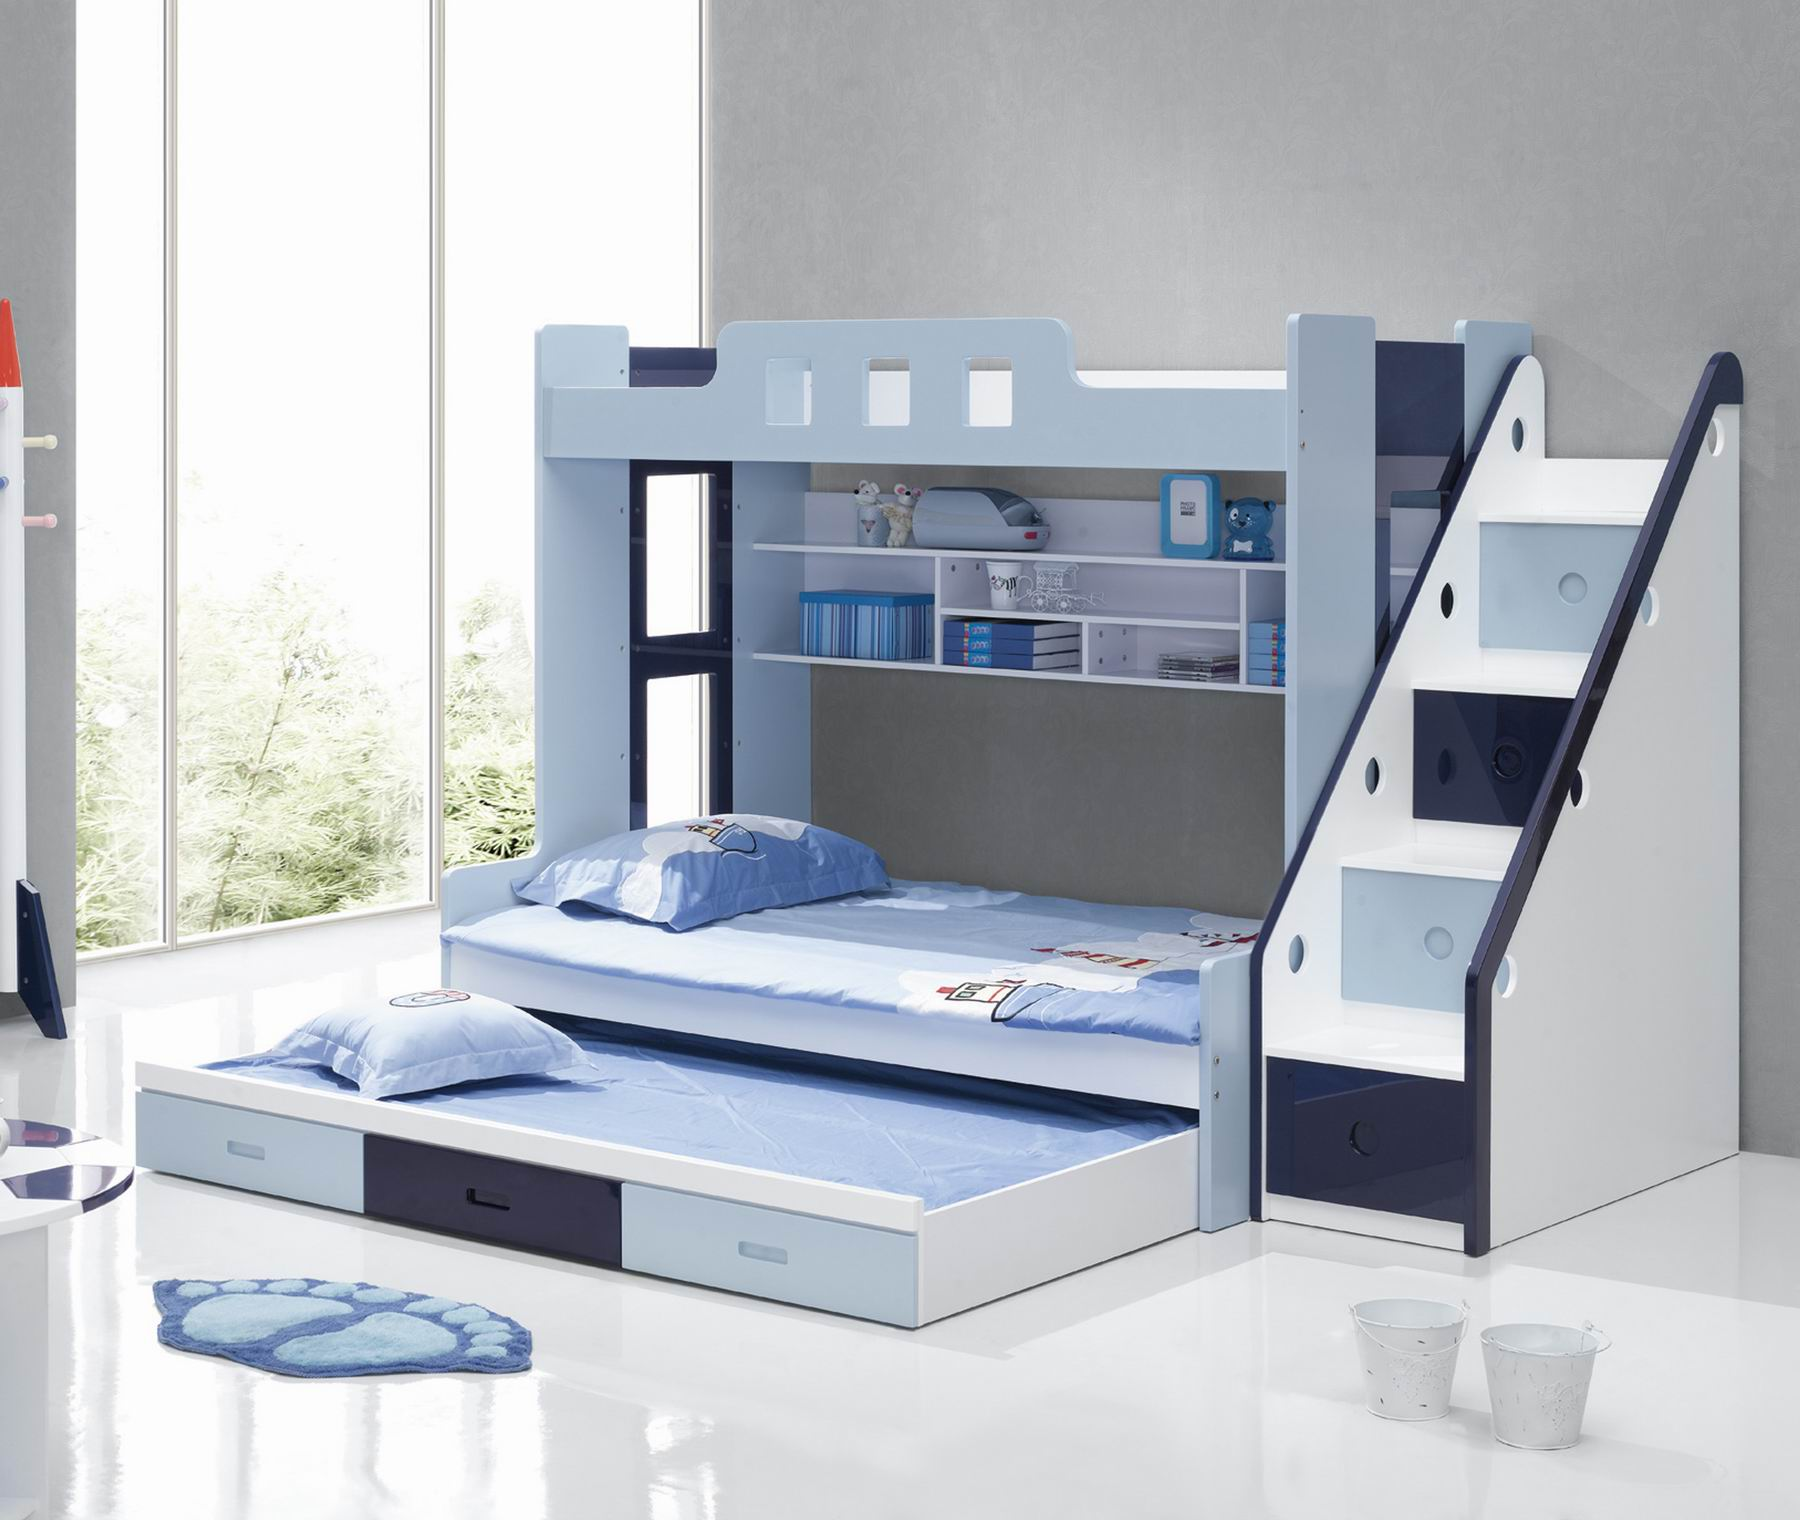 25 diy bunk beds with plans guide patterns. Black Bedroom Furniture Sets. Home Design Ideas